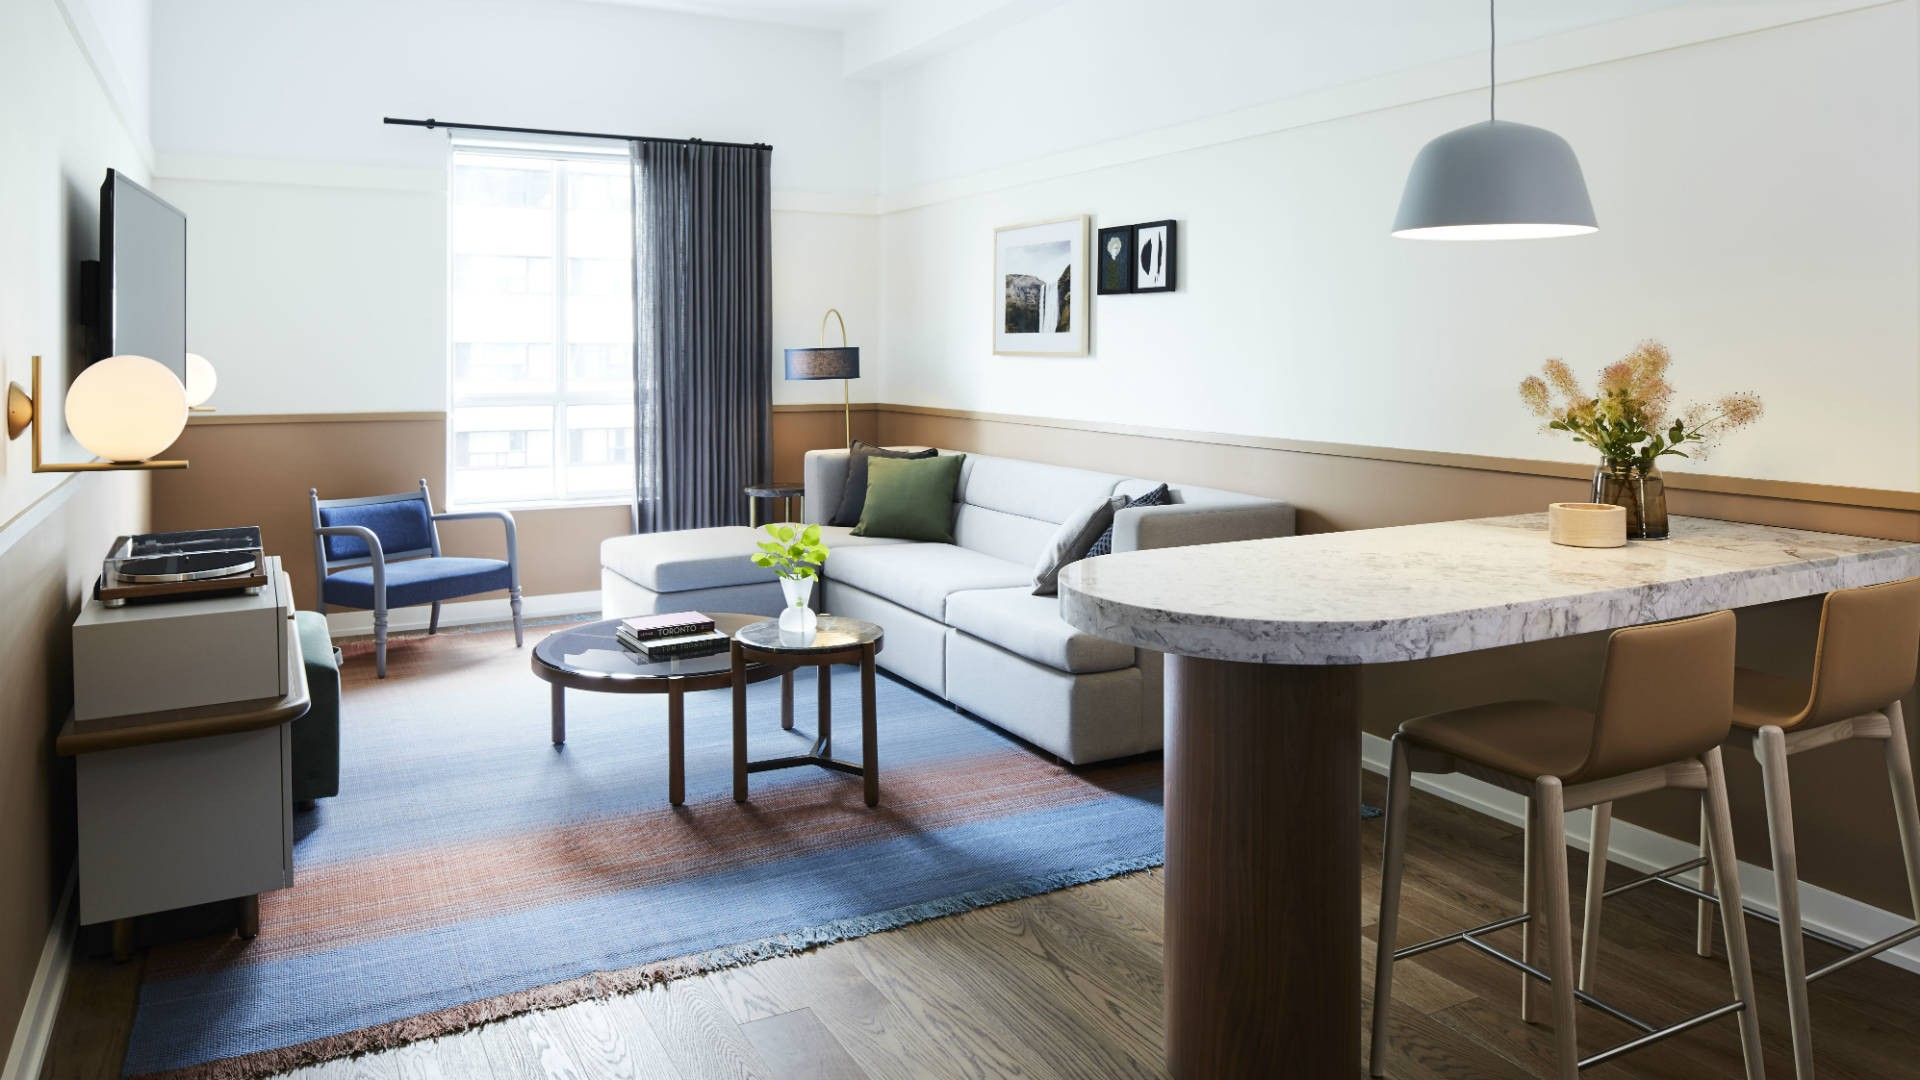 Hotel review: the Kimpton Saint George hotel, Toronto | Living area in a guest room at Kimpton Saint George